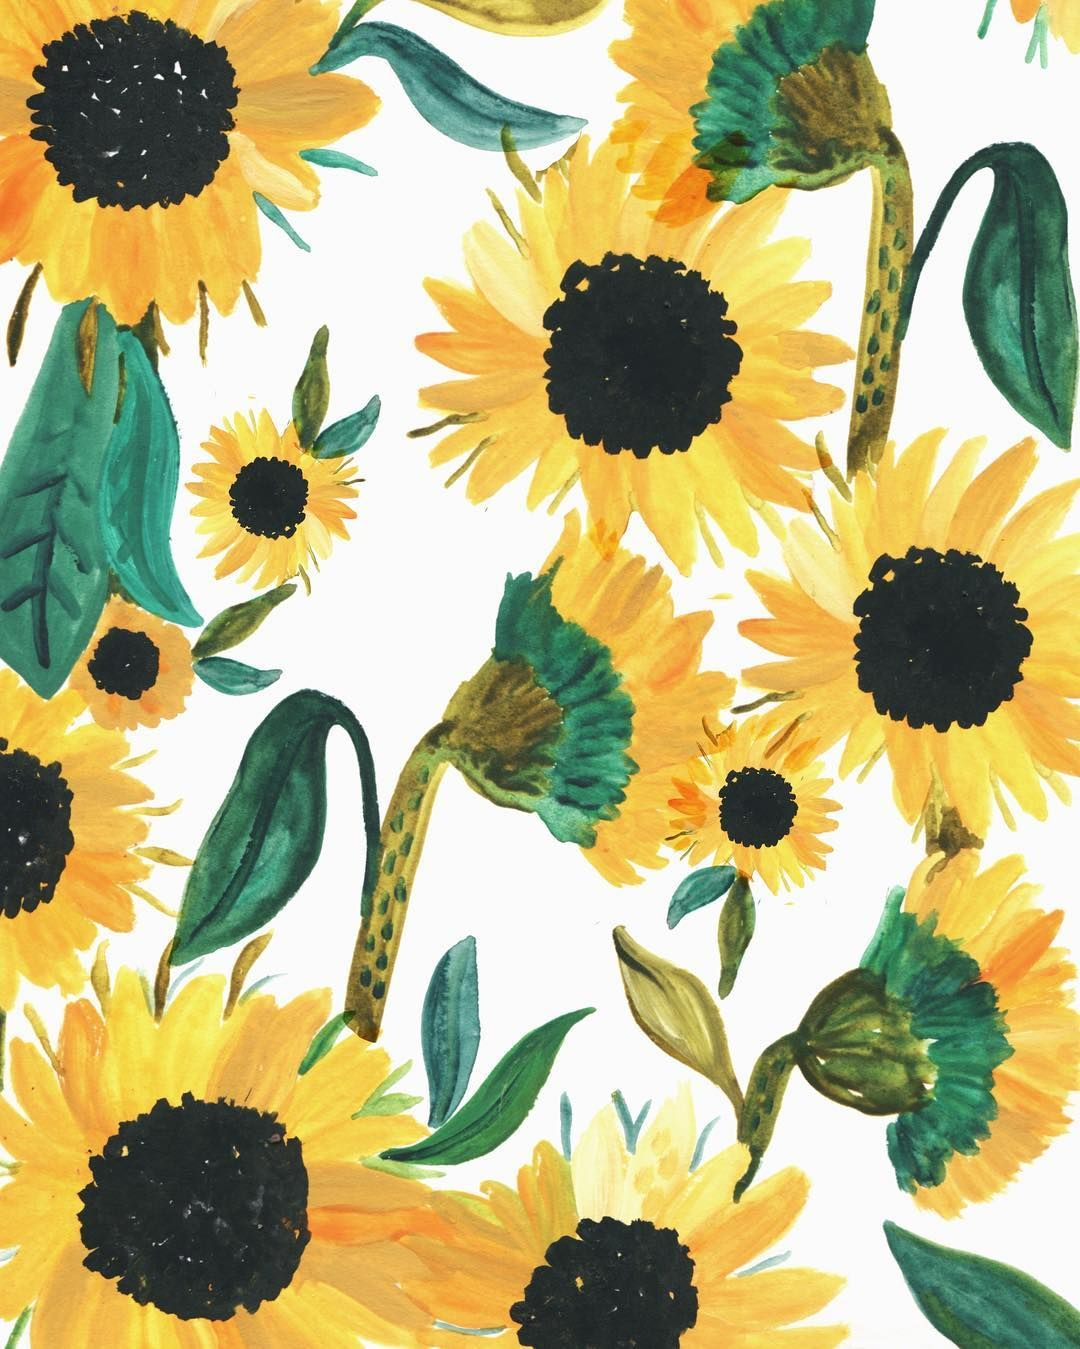 sunday sunflowers@rosieharbottle | watercolor beauties